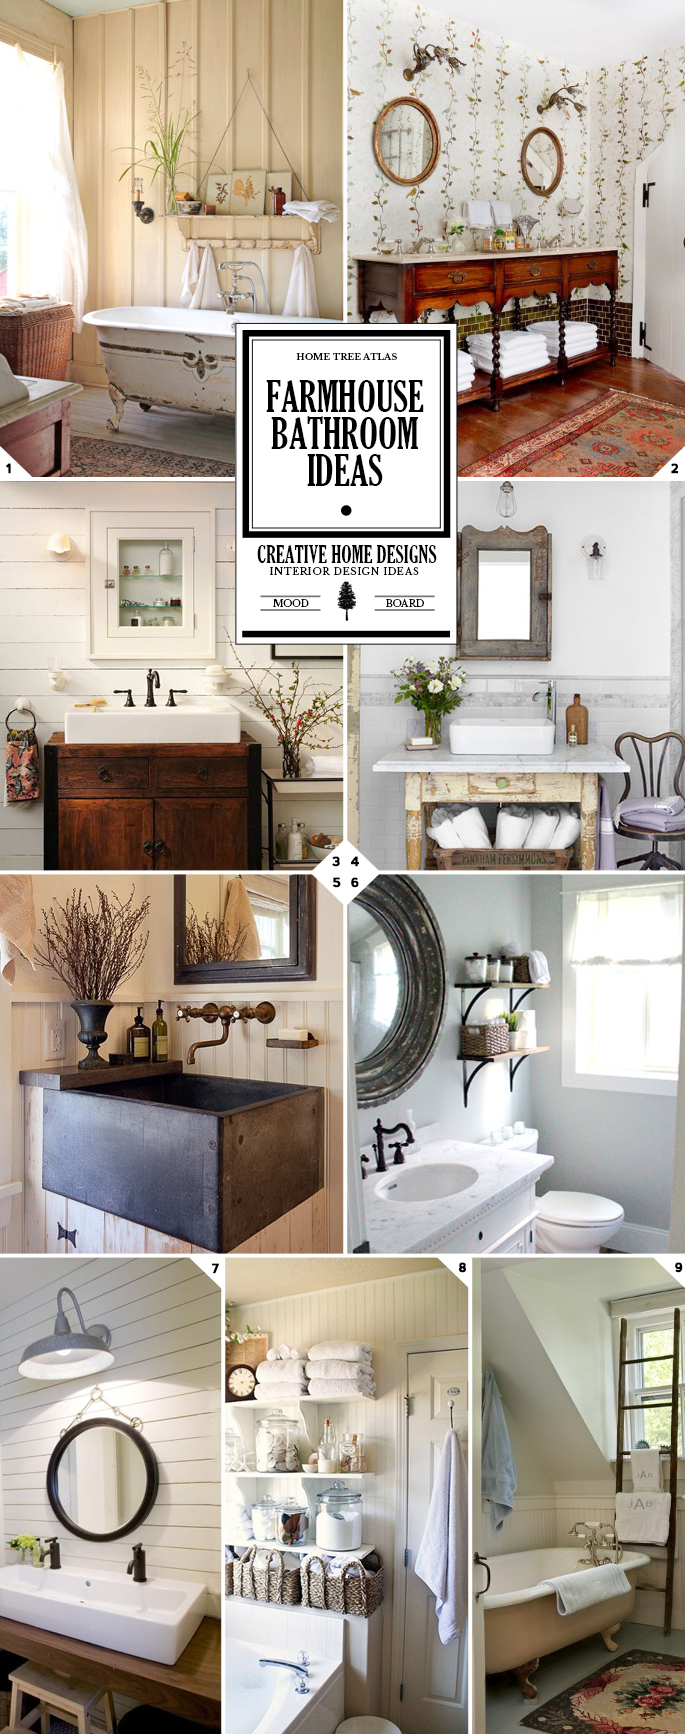 Farmhouse Bathroom Ideas and Decor Tips (Vanity, Sink, Lighting, and Storage Ideas)